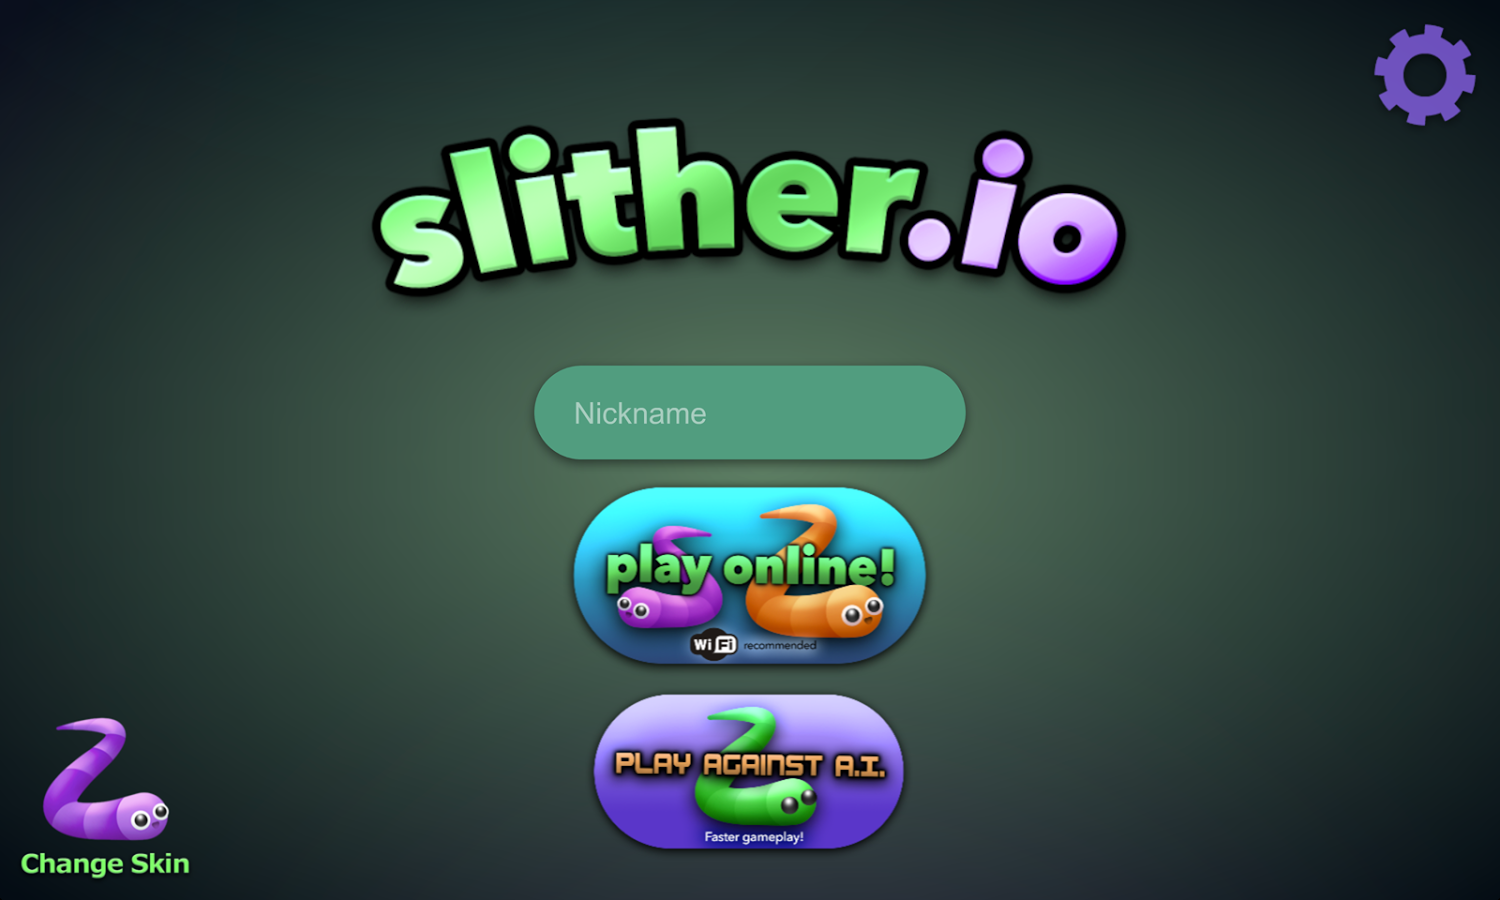 Image Slither.io